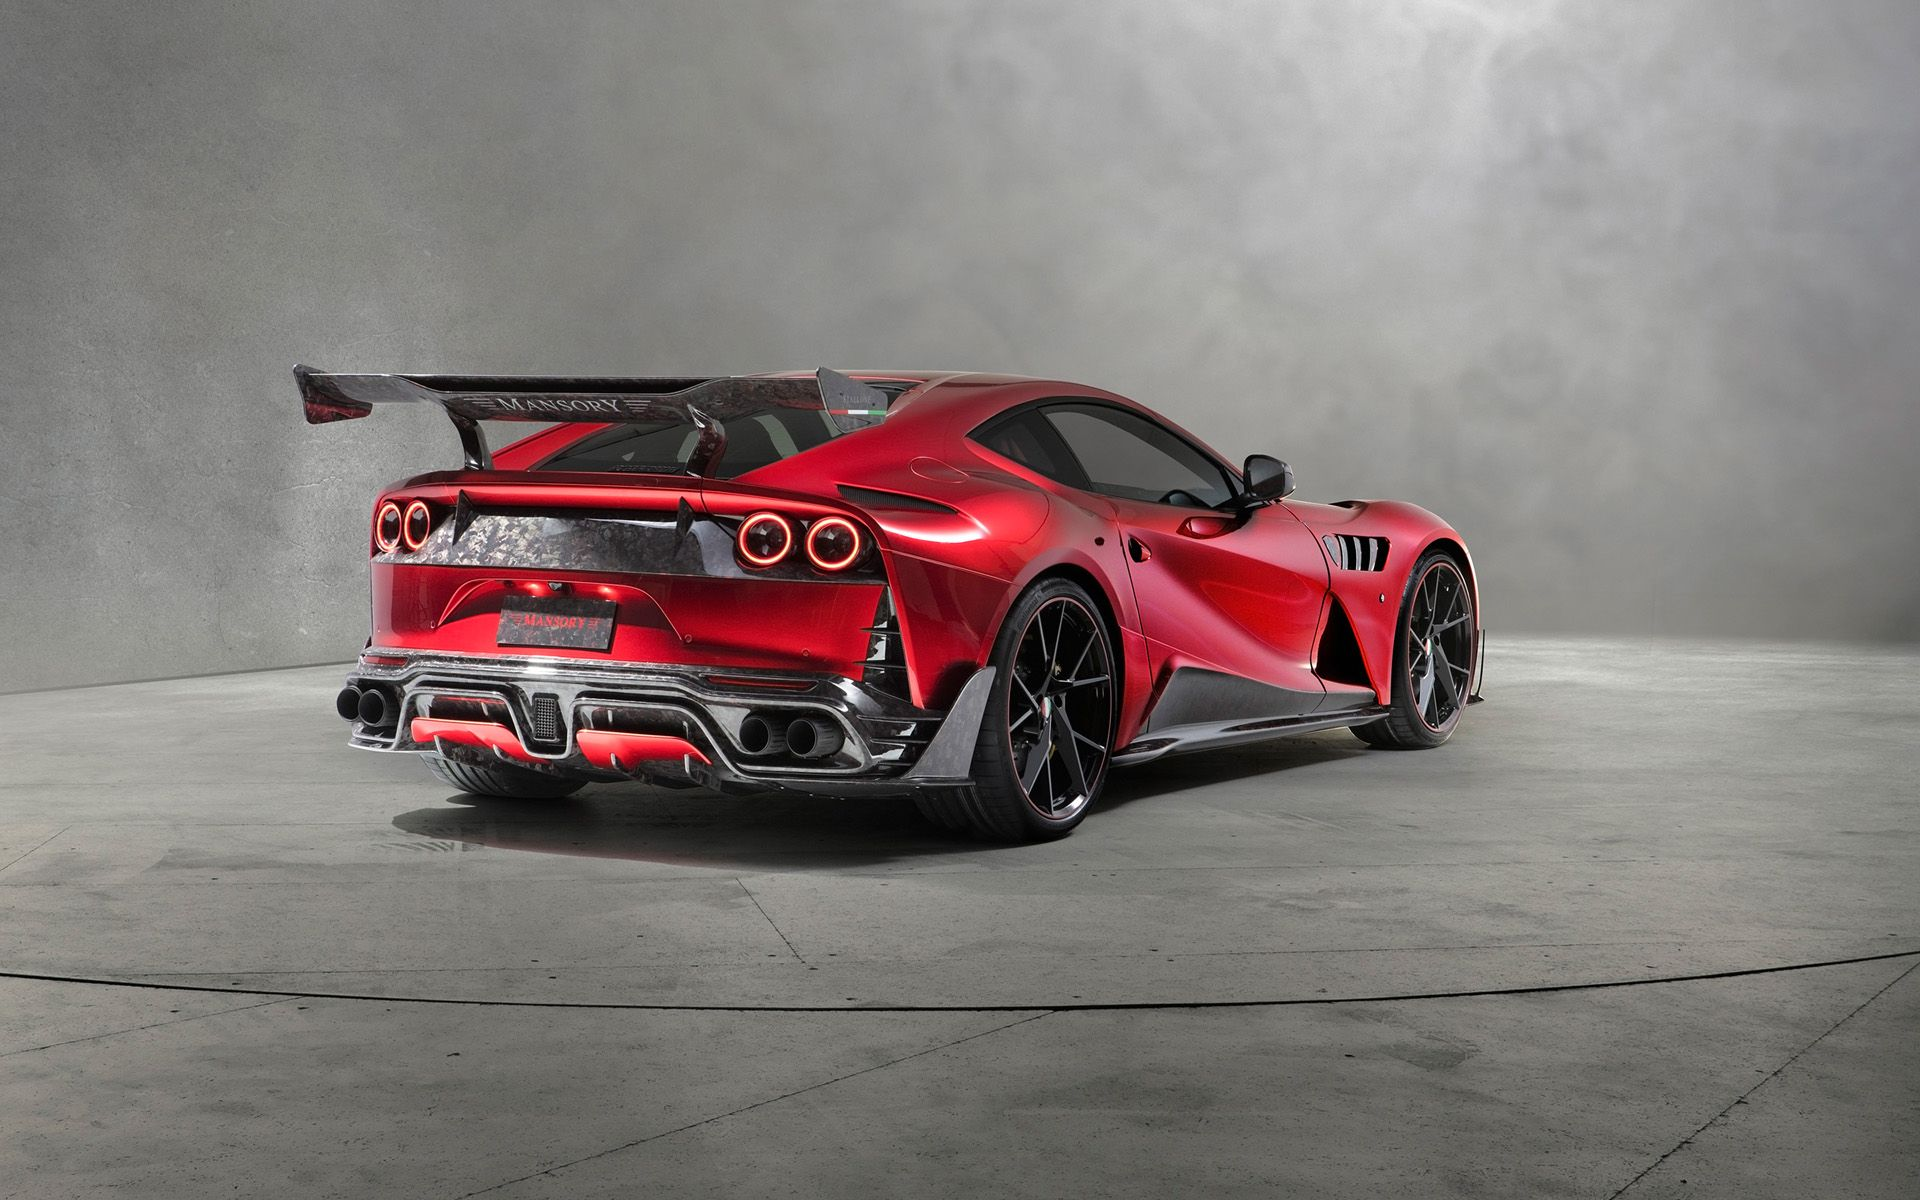 2018 Mansory Ferrari 812 Superfast Stallone Serious Wheels